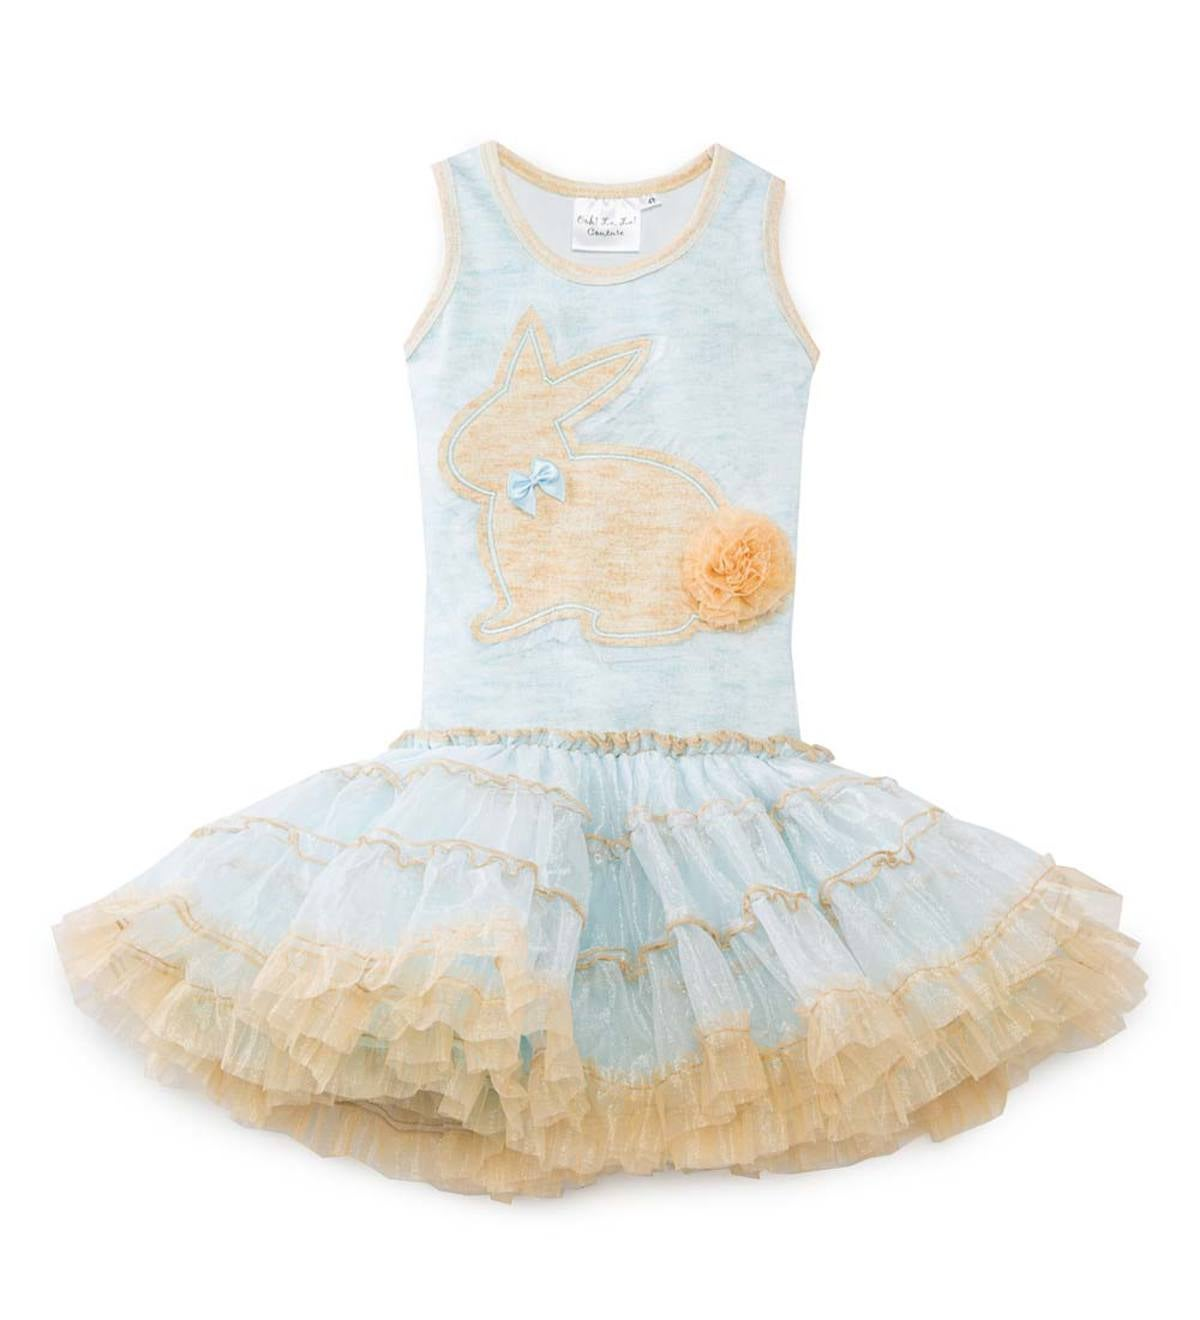 Bunny Tutu Dress - Blue - /7